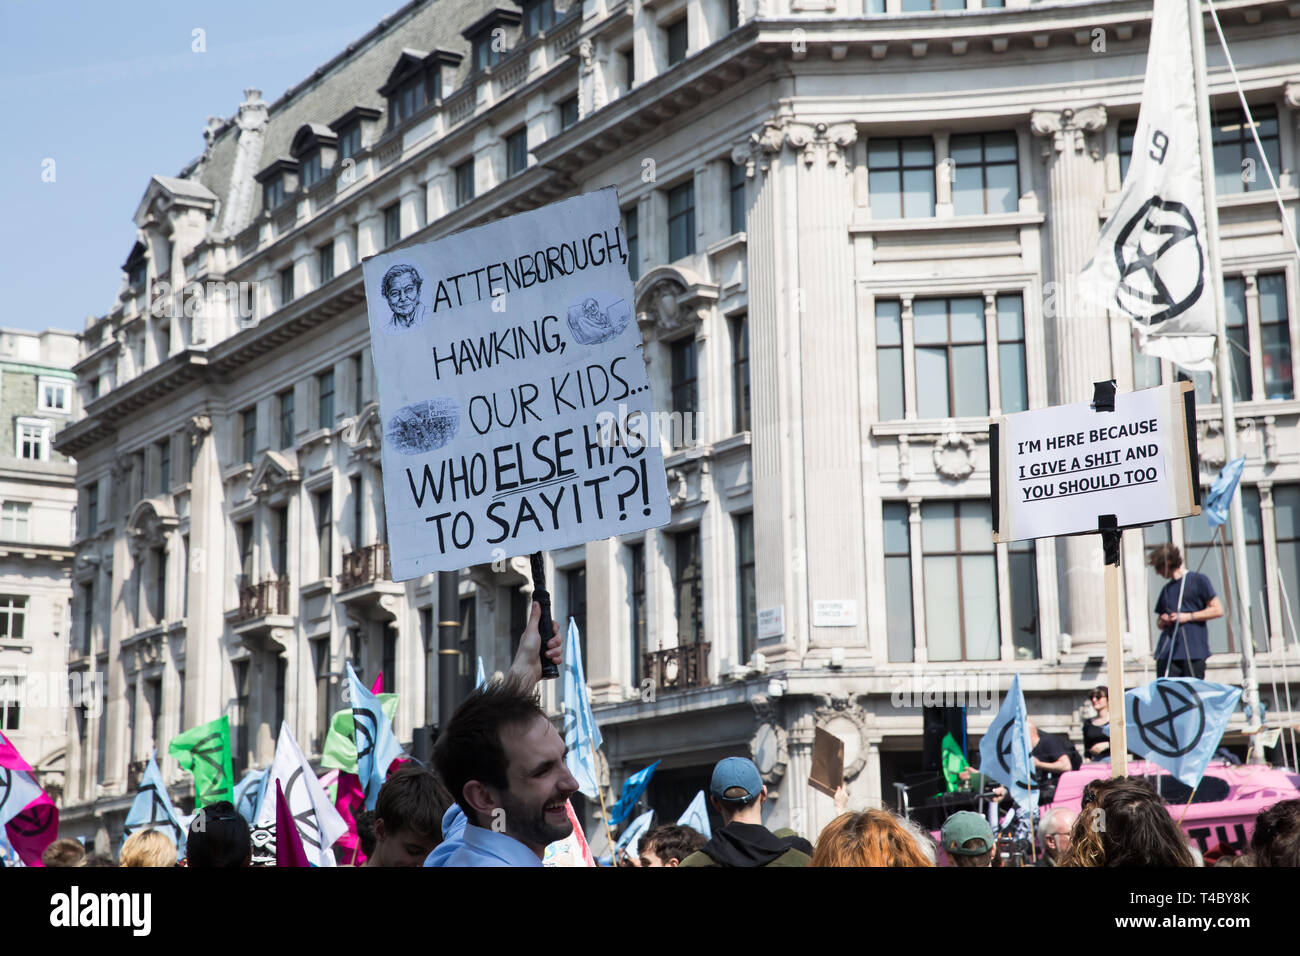 London, UK. 15th Apr, 2019. Climate change protesters In Oxford Circus and Regent street as Environmental protesters paralyse London's roads by creating human barricades at five landmarks. Extinction Rebellion organisers claim 30,000 eco-protesters are expected to block major routes today. They also pulled a boat up Regent Street to highlight the threat of Global Warming, but on a darker side they smashed windows at Shells headquarters. Credit: Keith Larby/Alamy Live News Stock Photo